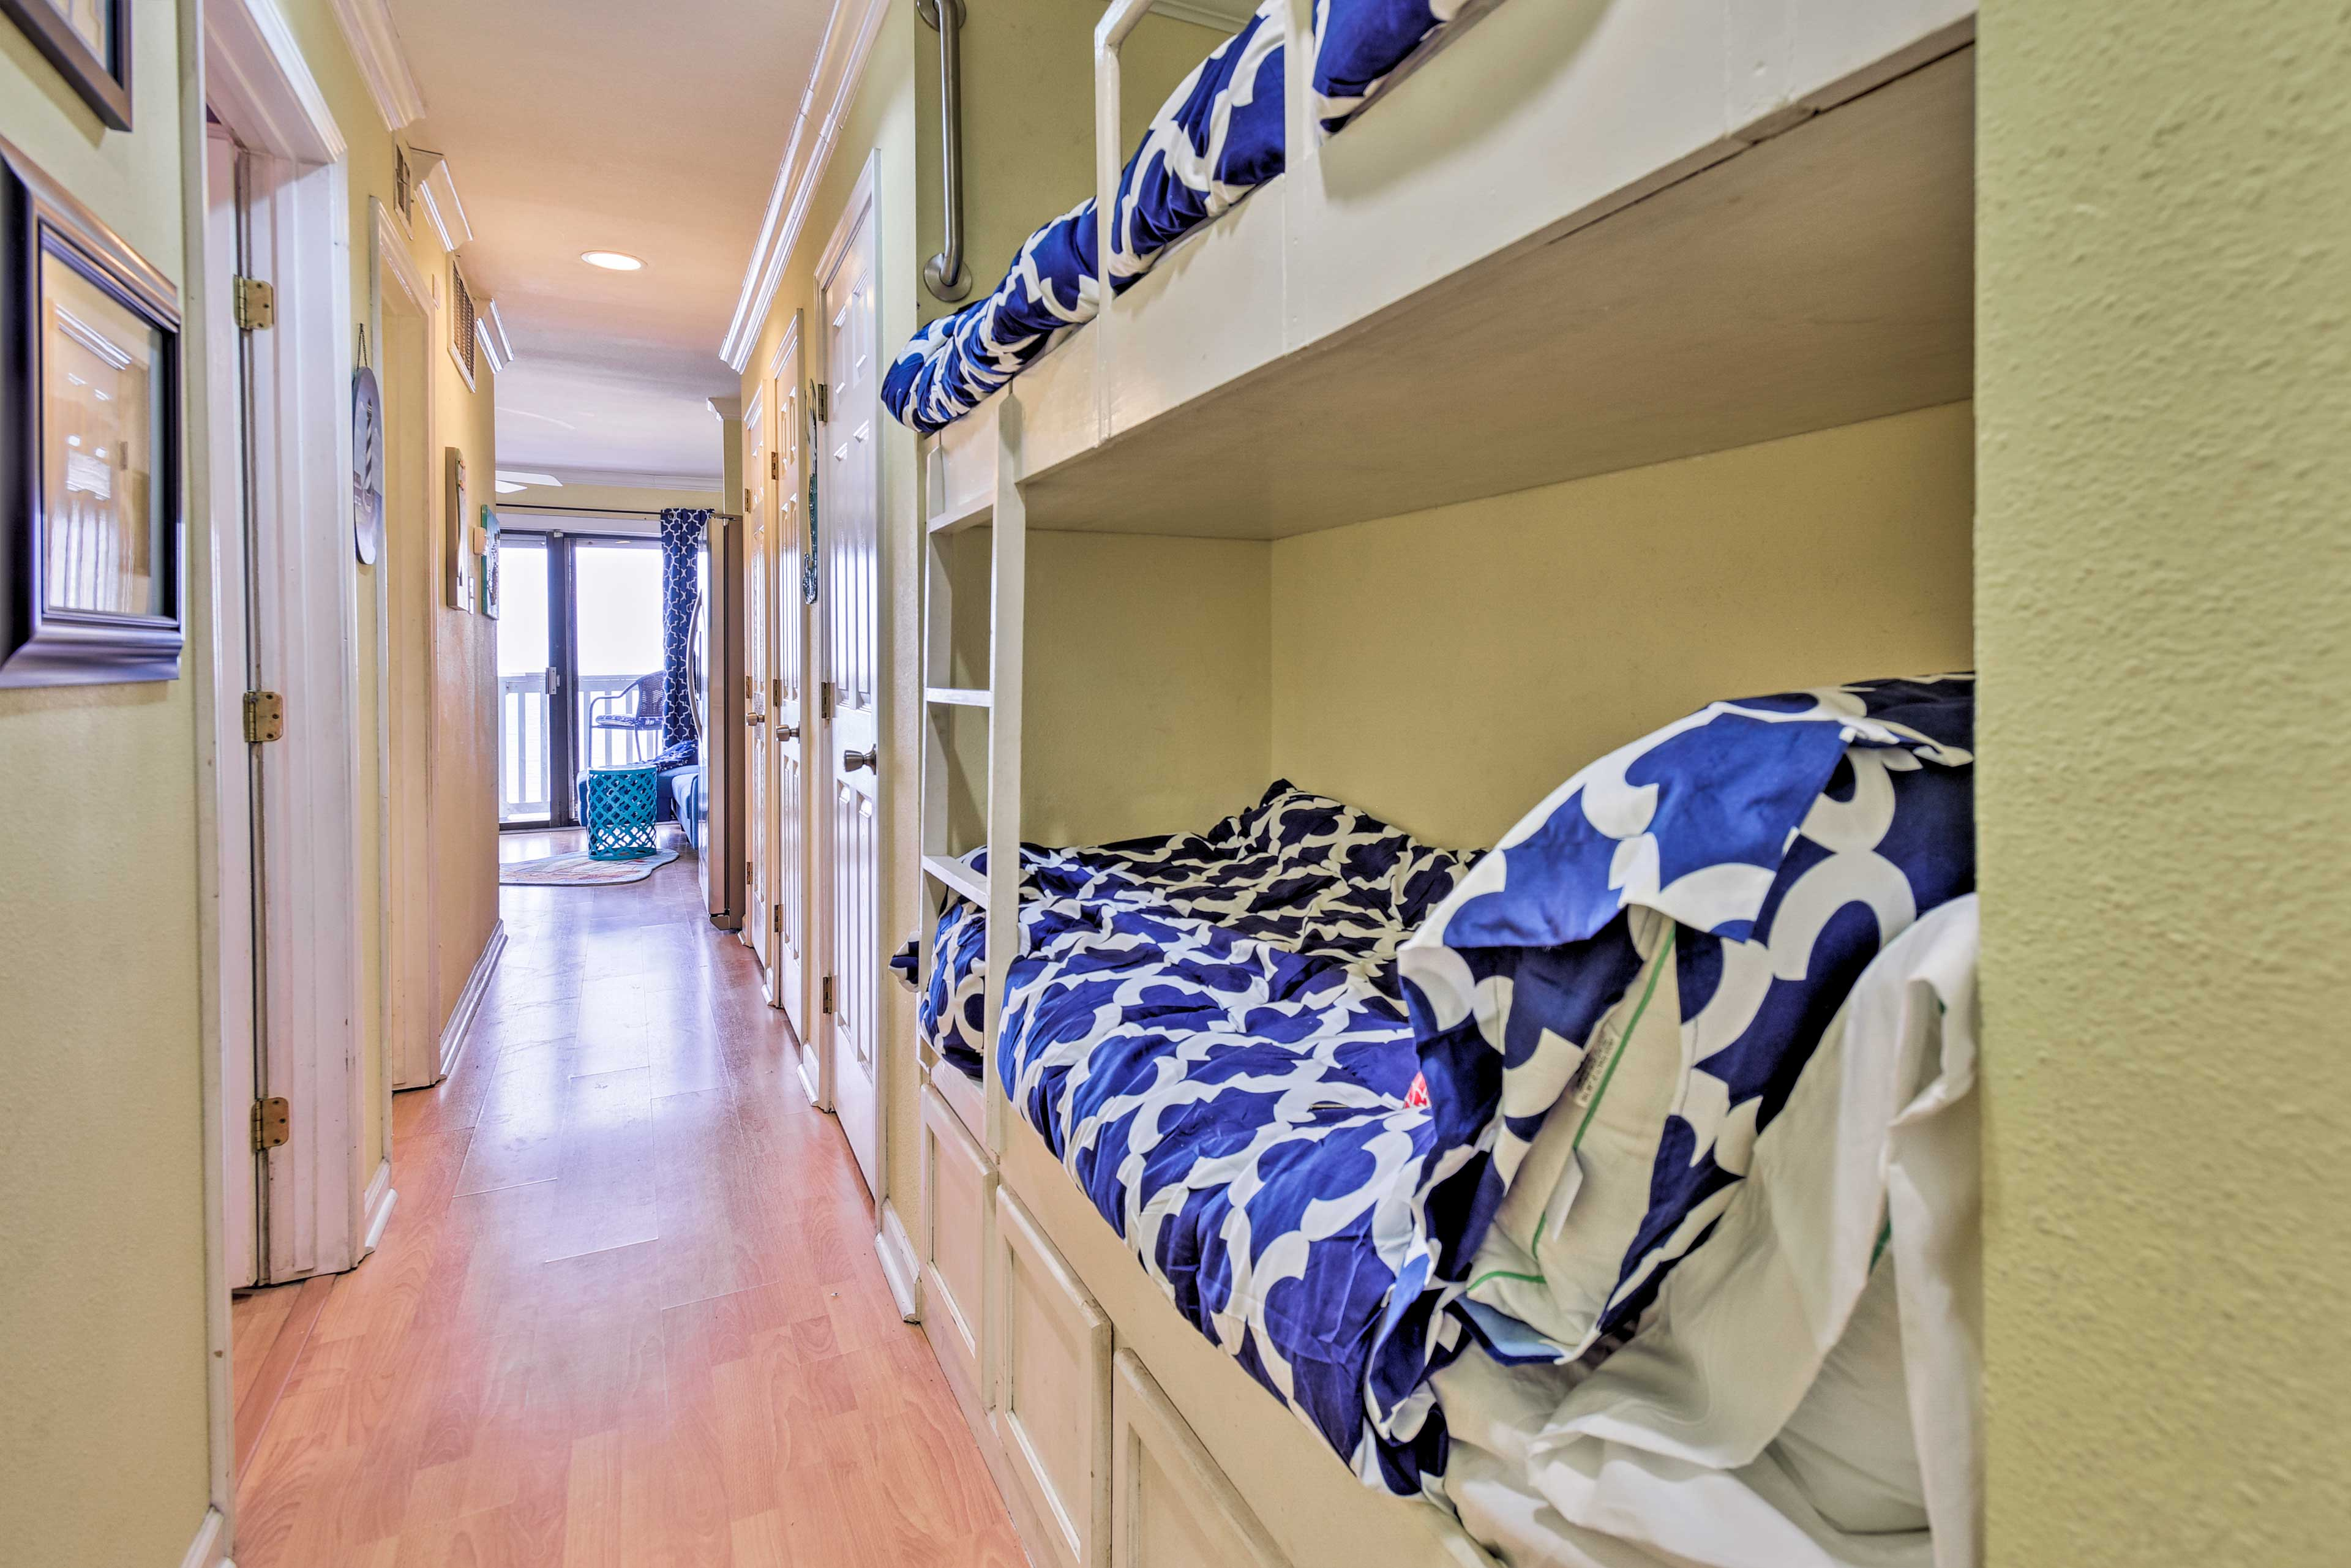 The hallway is equipped with a built-in bunk bed.